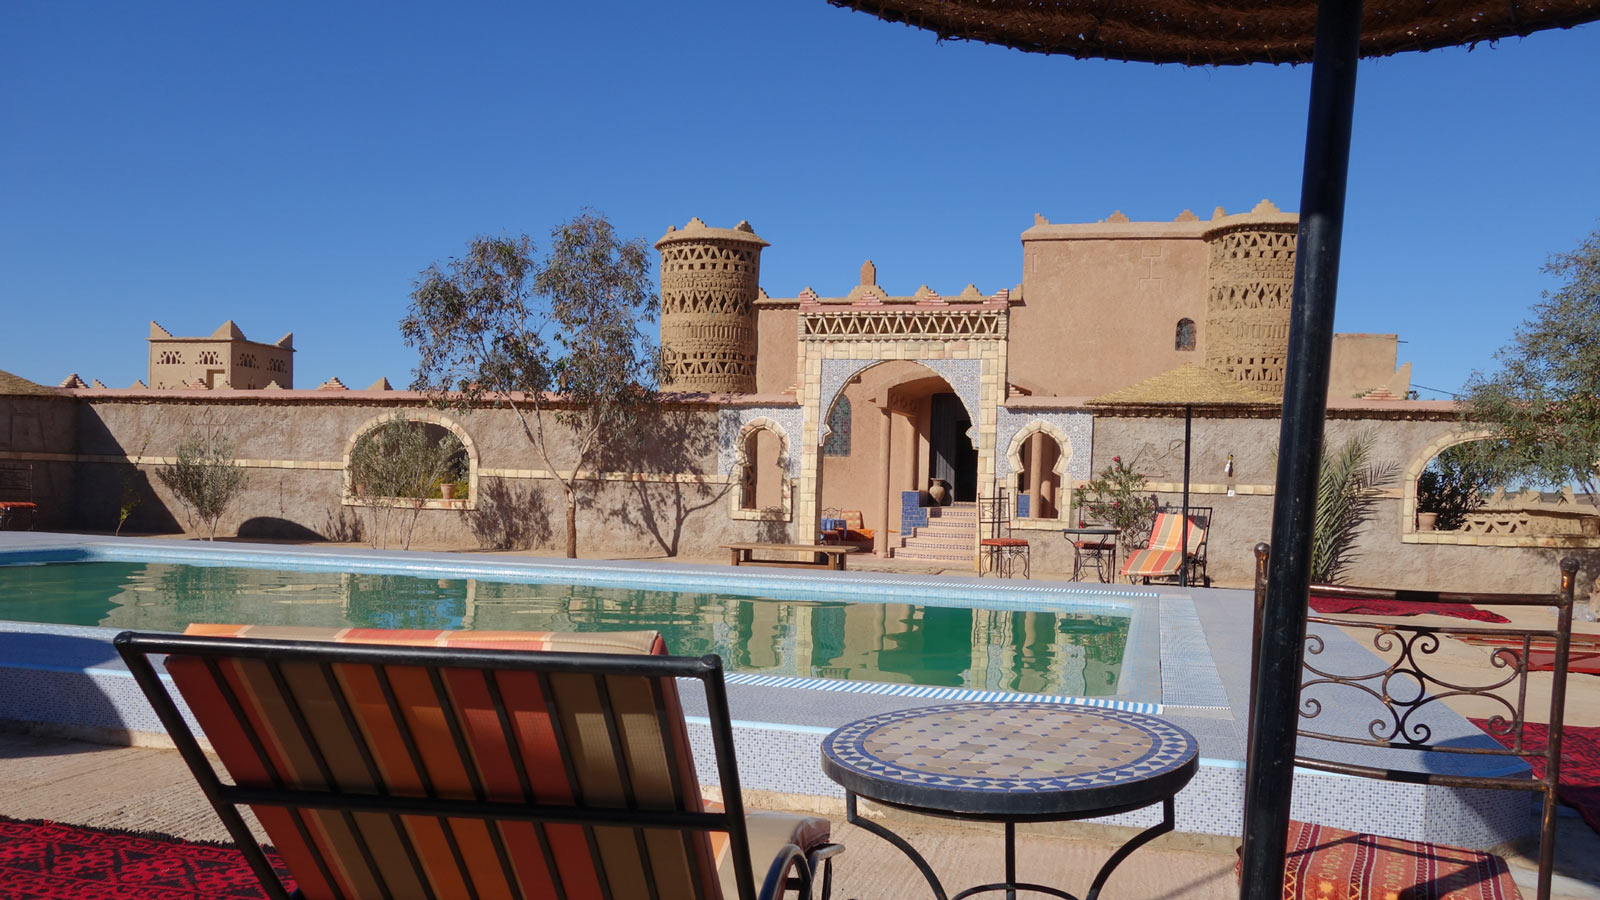 Explore the House of the Sun, Swimming Pool hotel merzoug